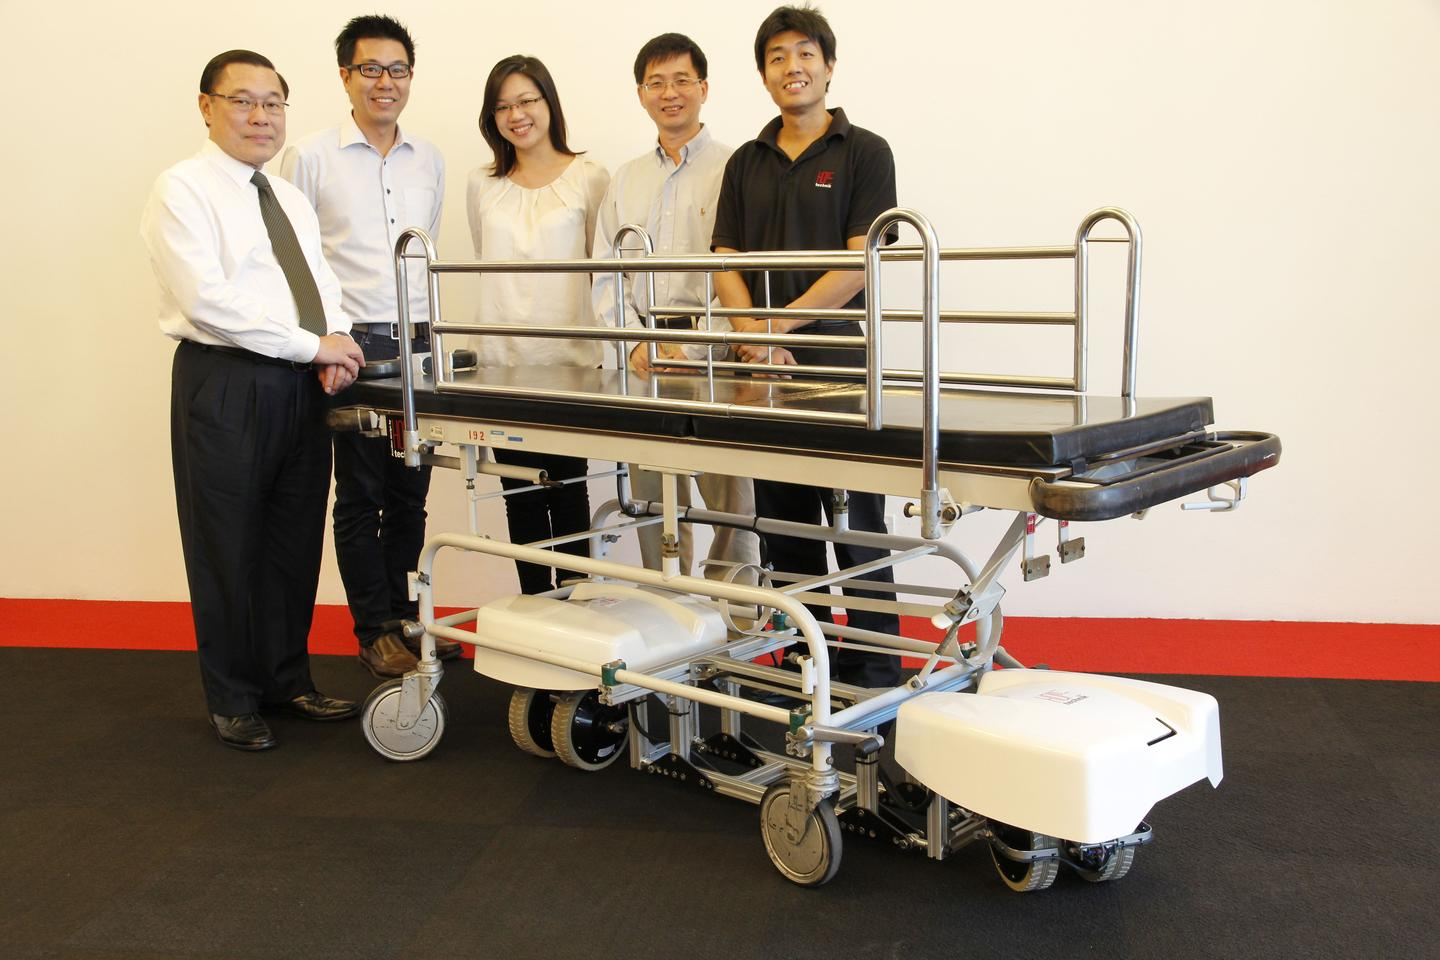 Members of the development team, with a SESTO-equipped bed